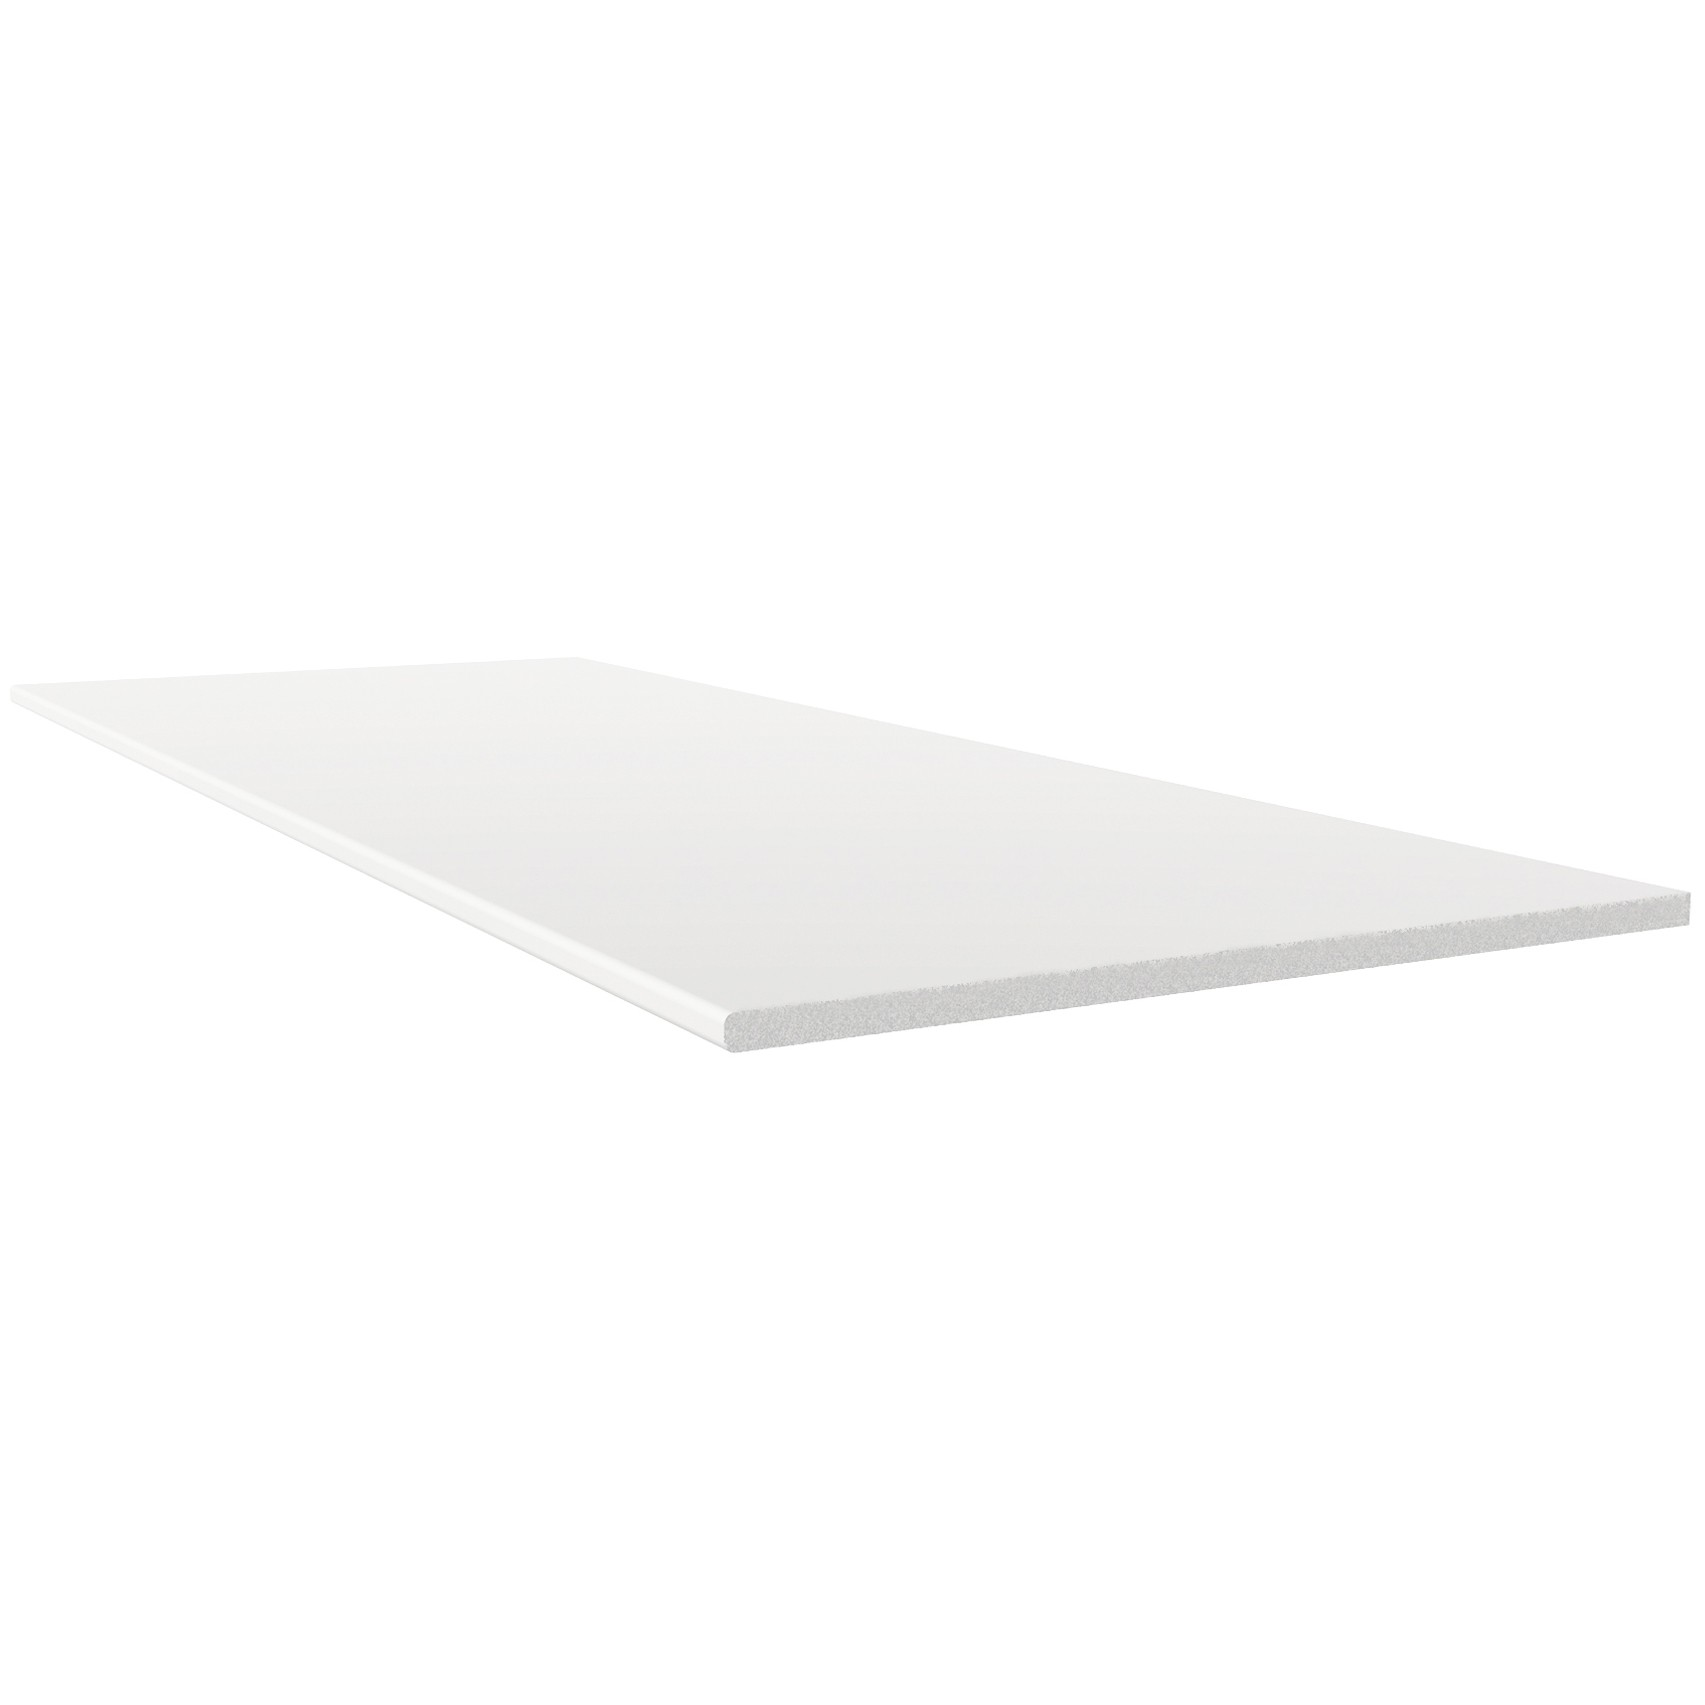 Freefoam 10mm Solid Soffit Board - White, 175mm, 2.5 metre